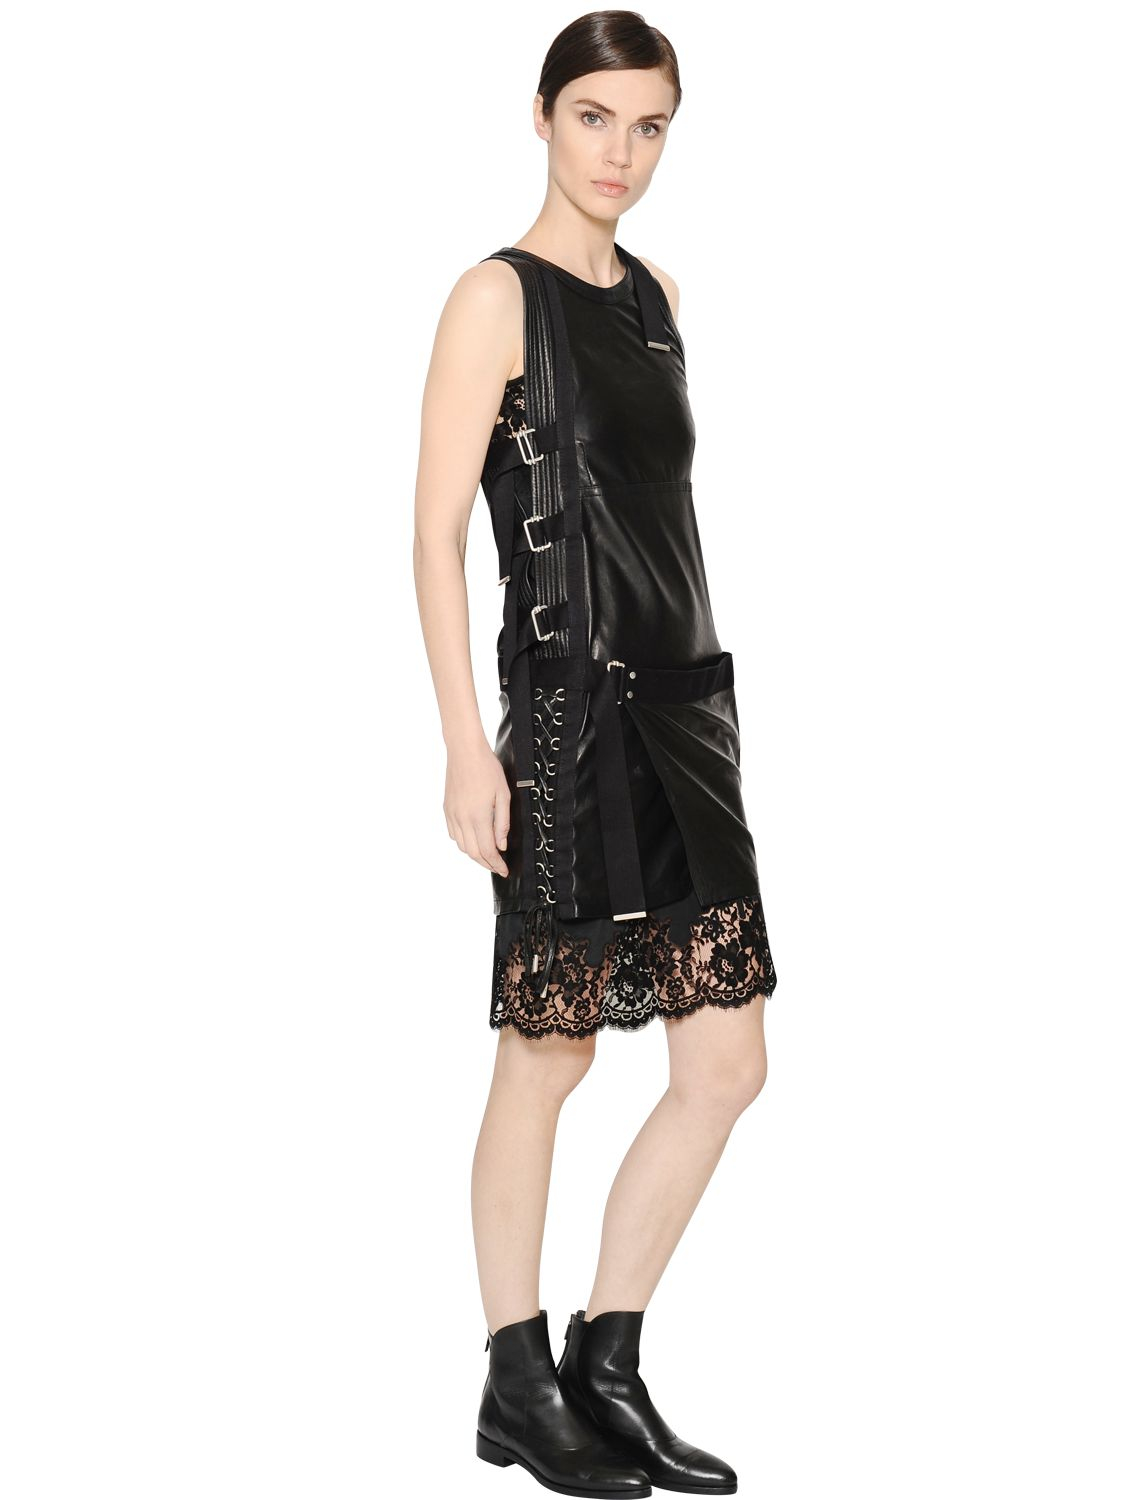 Lyst Diesel Black Gold Leather Amp Lace Dress With Buckles